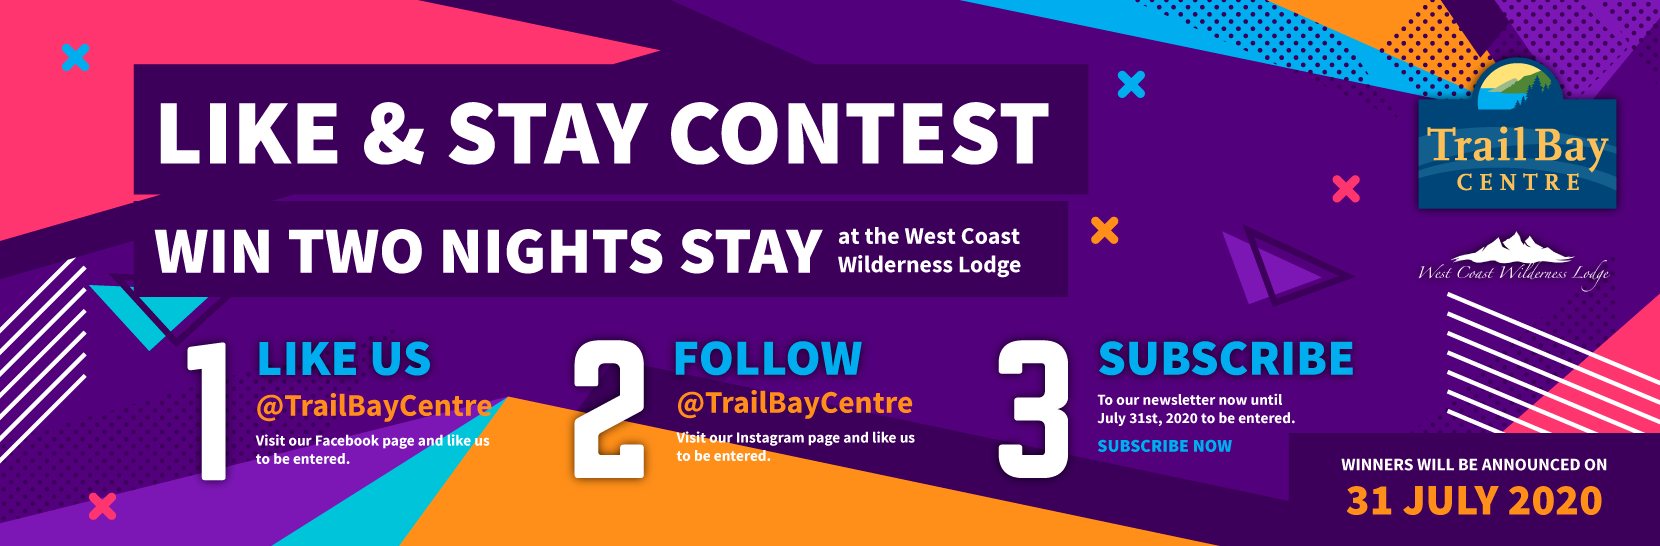 Like and win two night stay contest